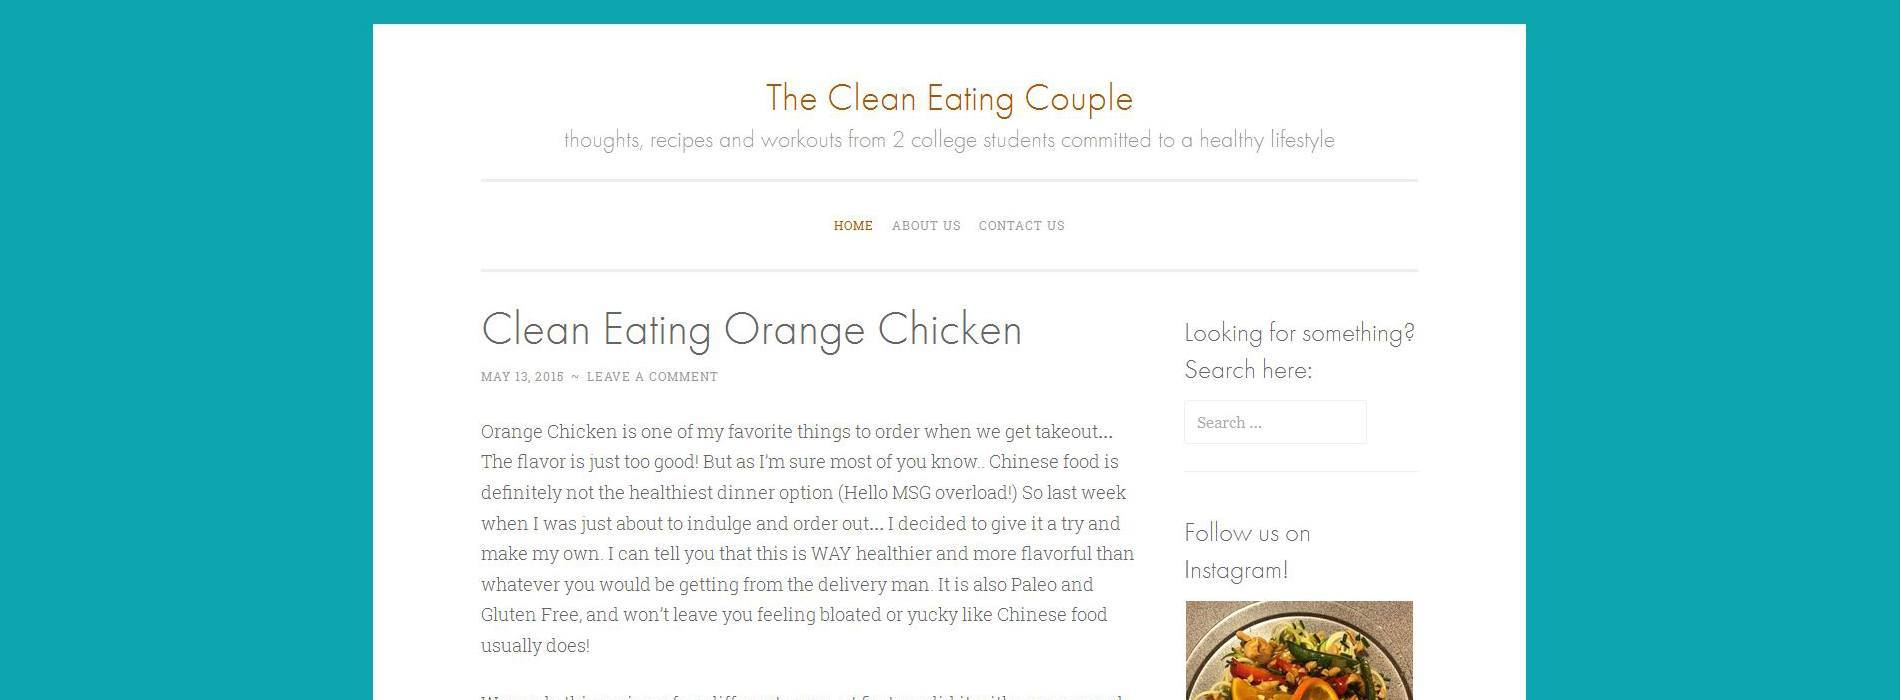 The Clean Eating Couple Blog